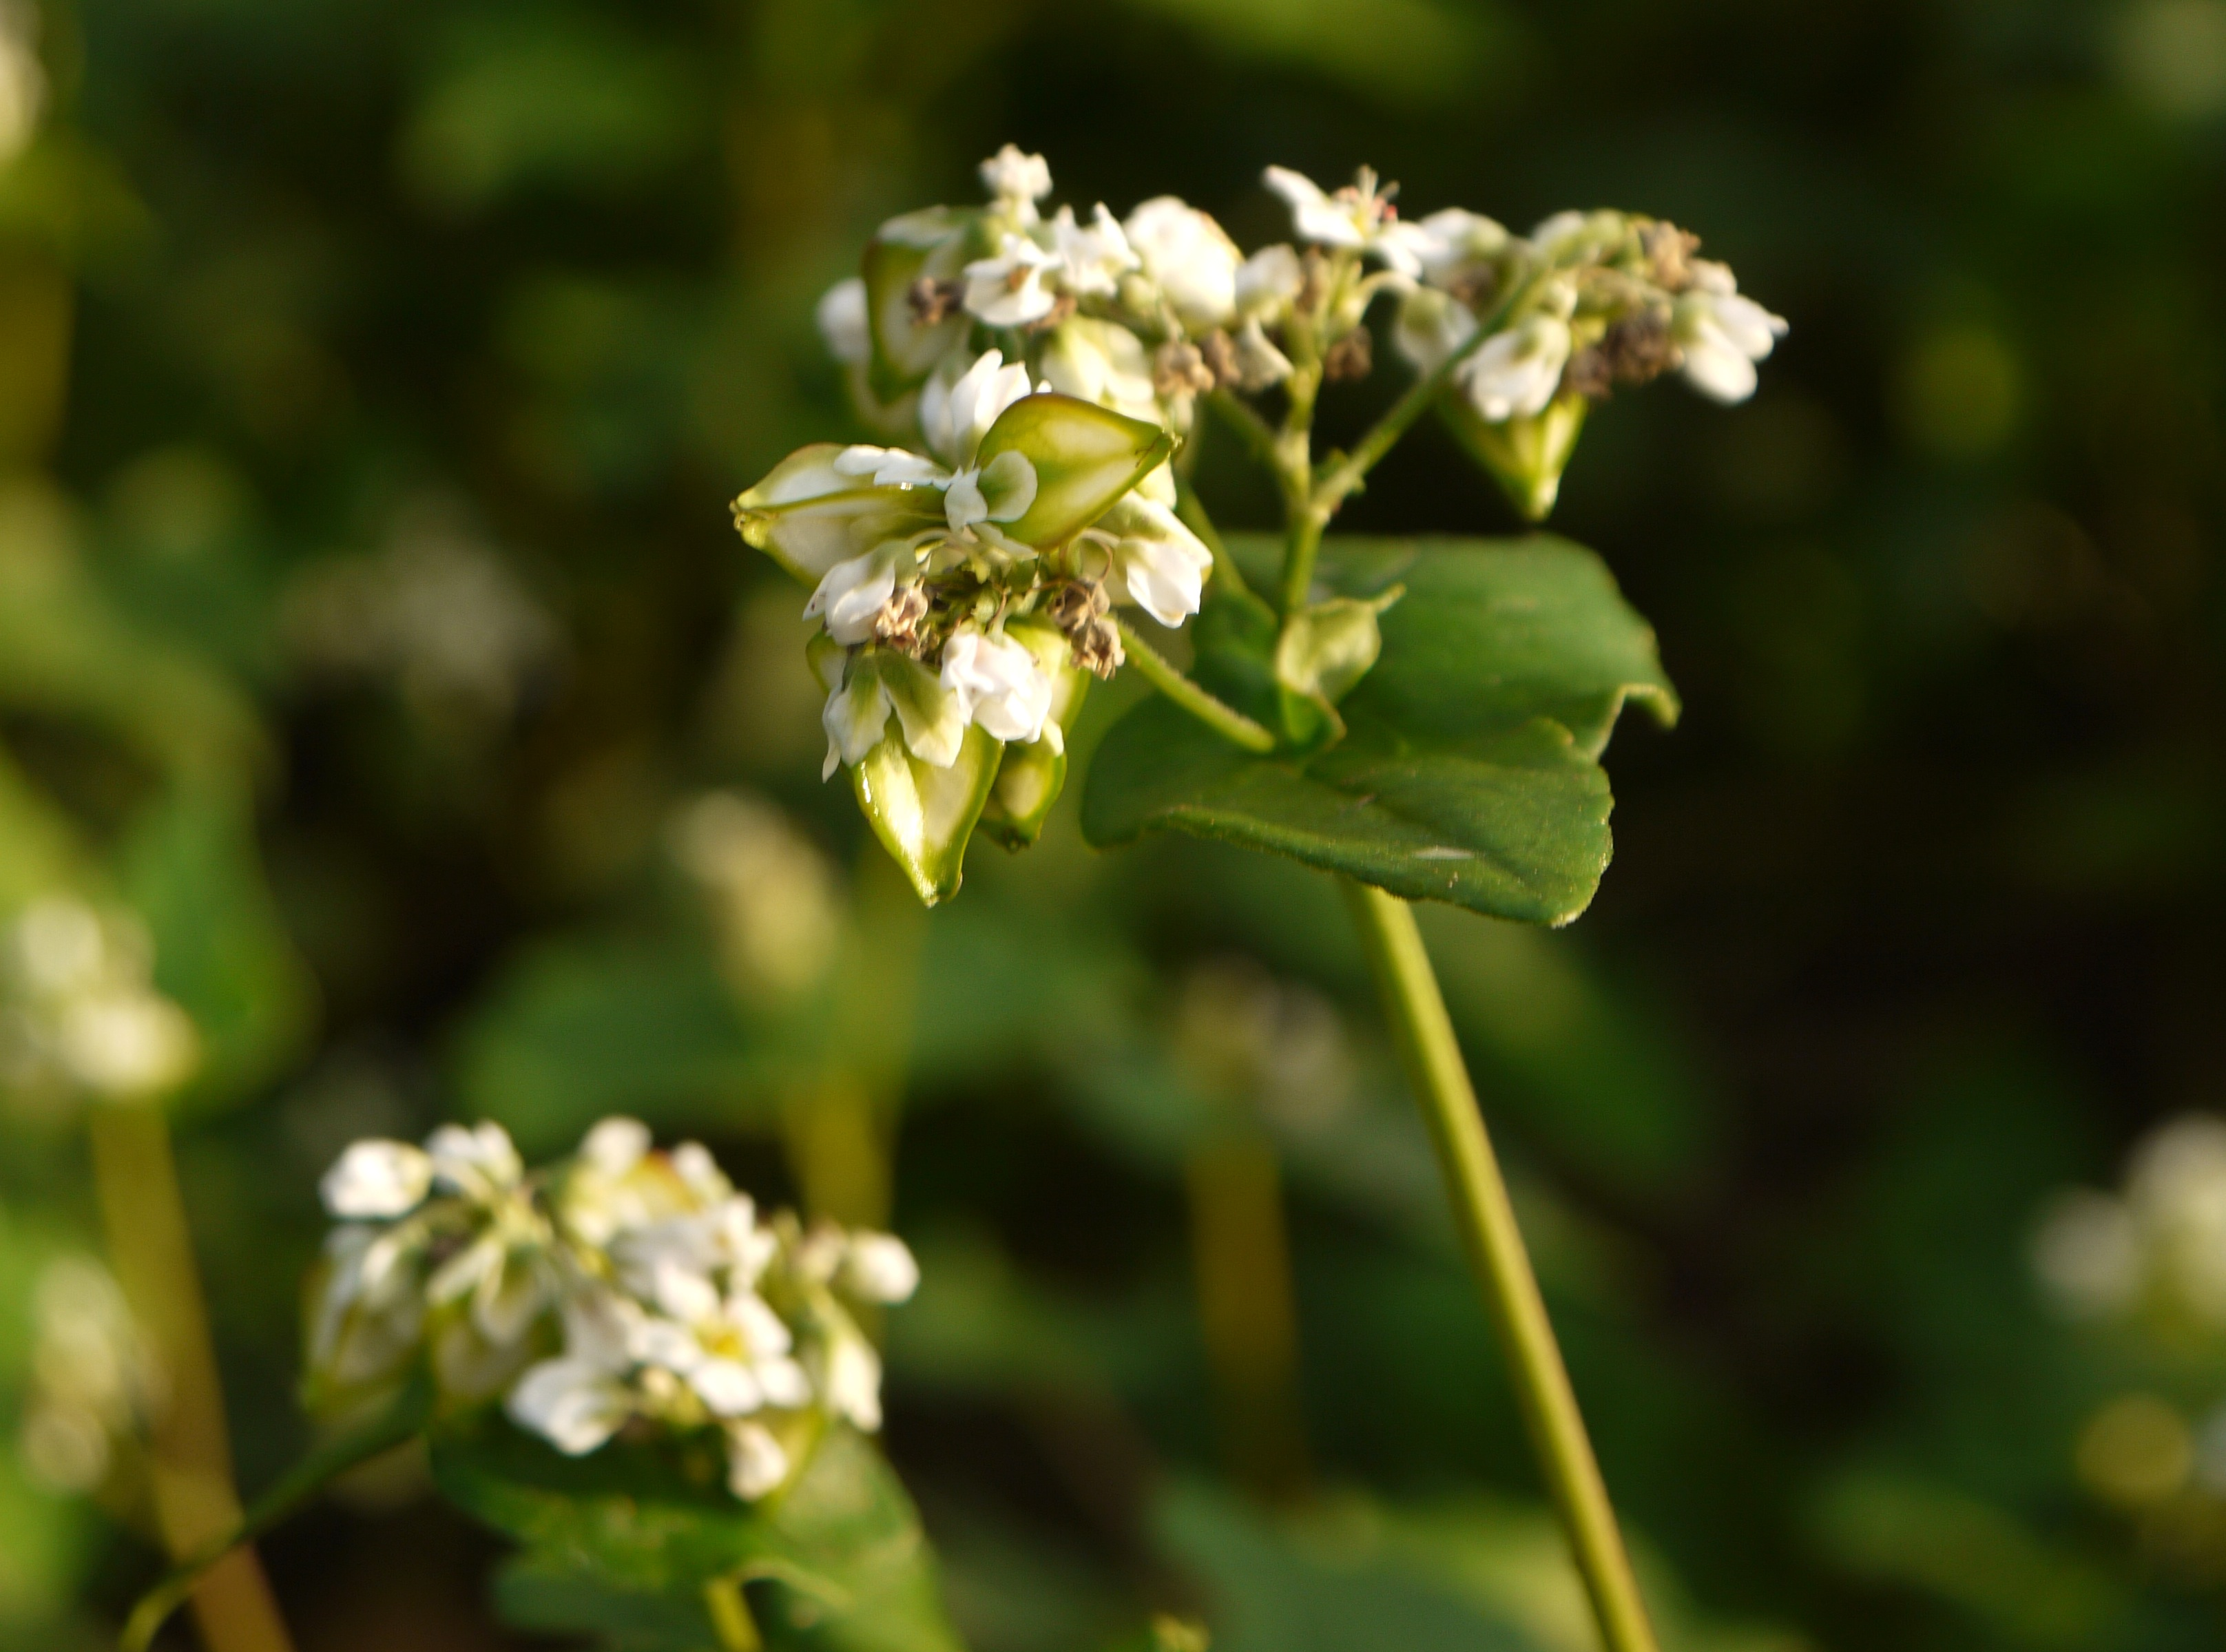 Japanese buckwheat flower